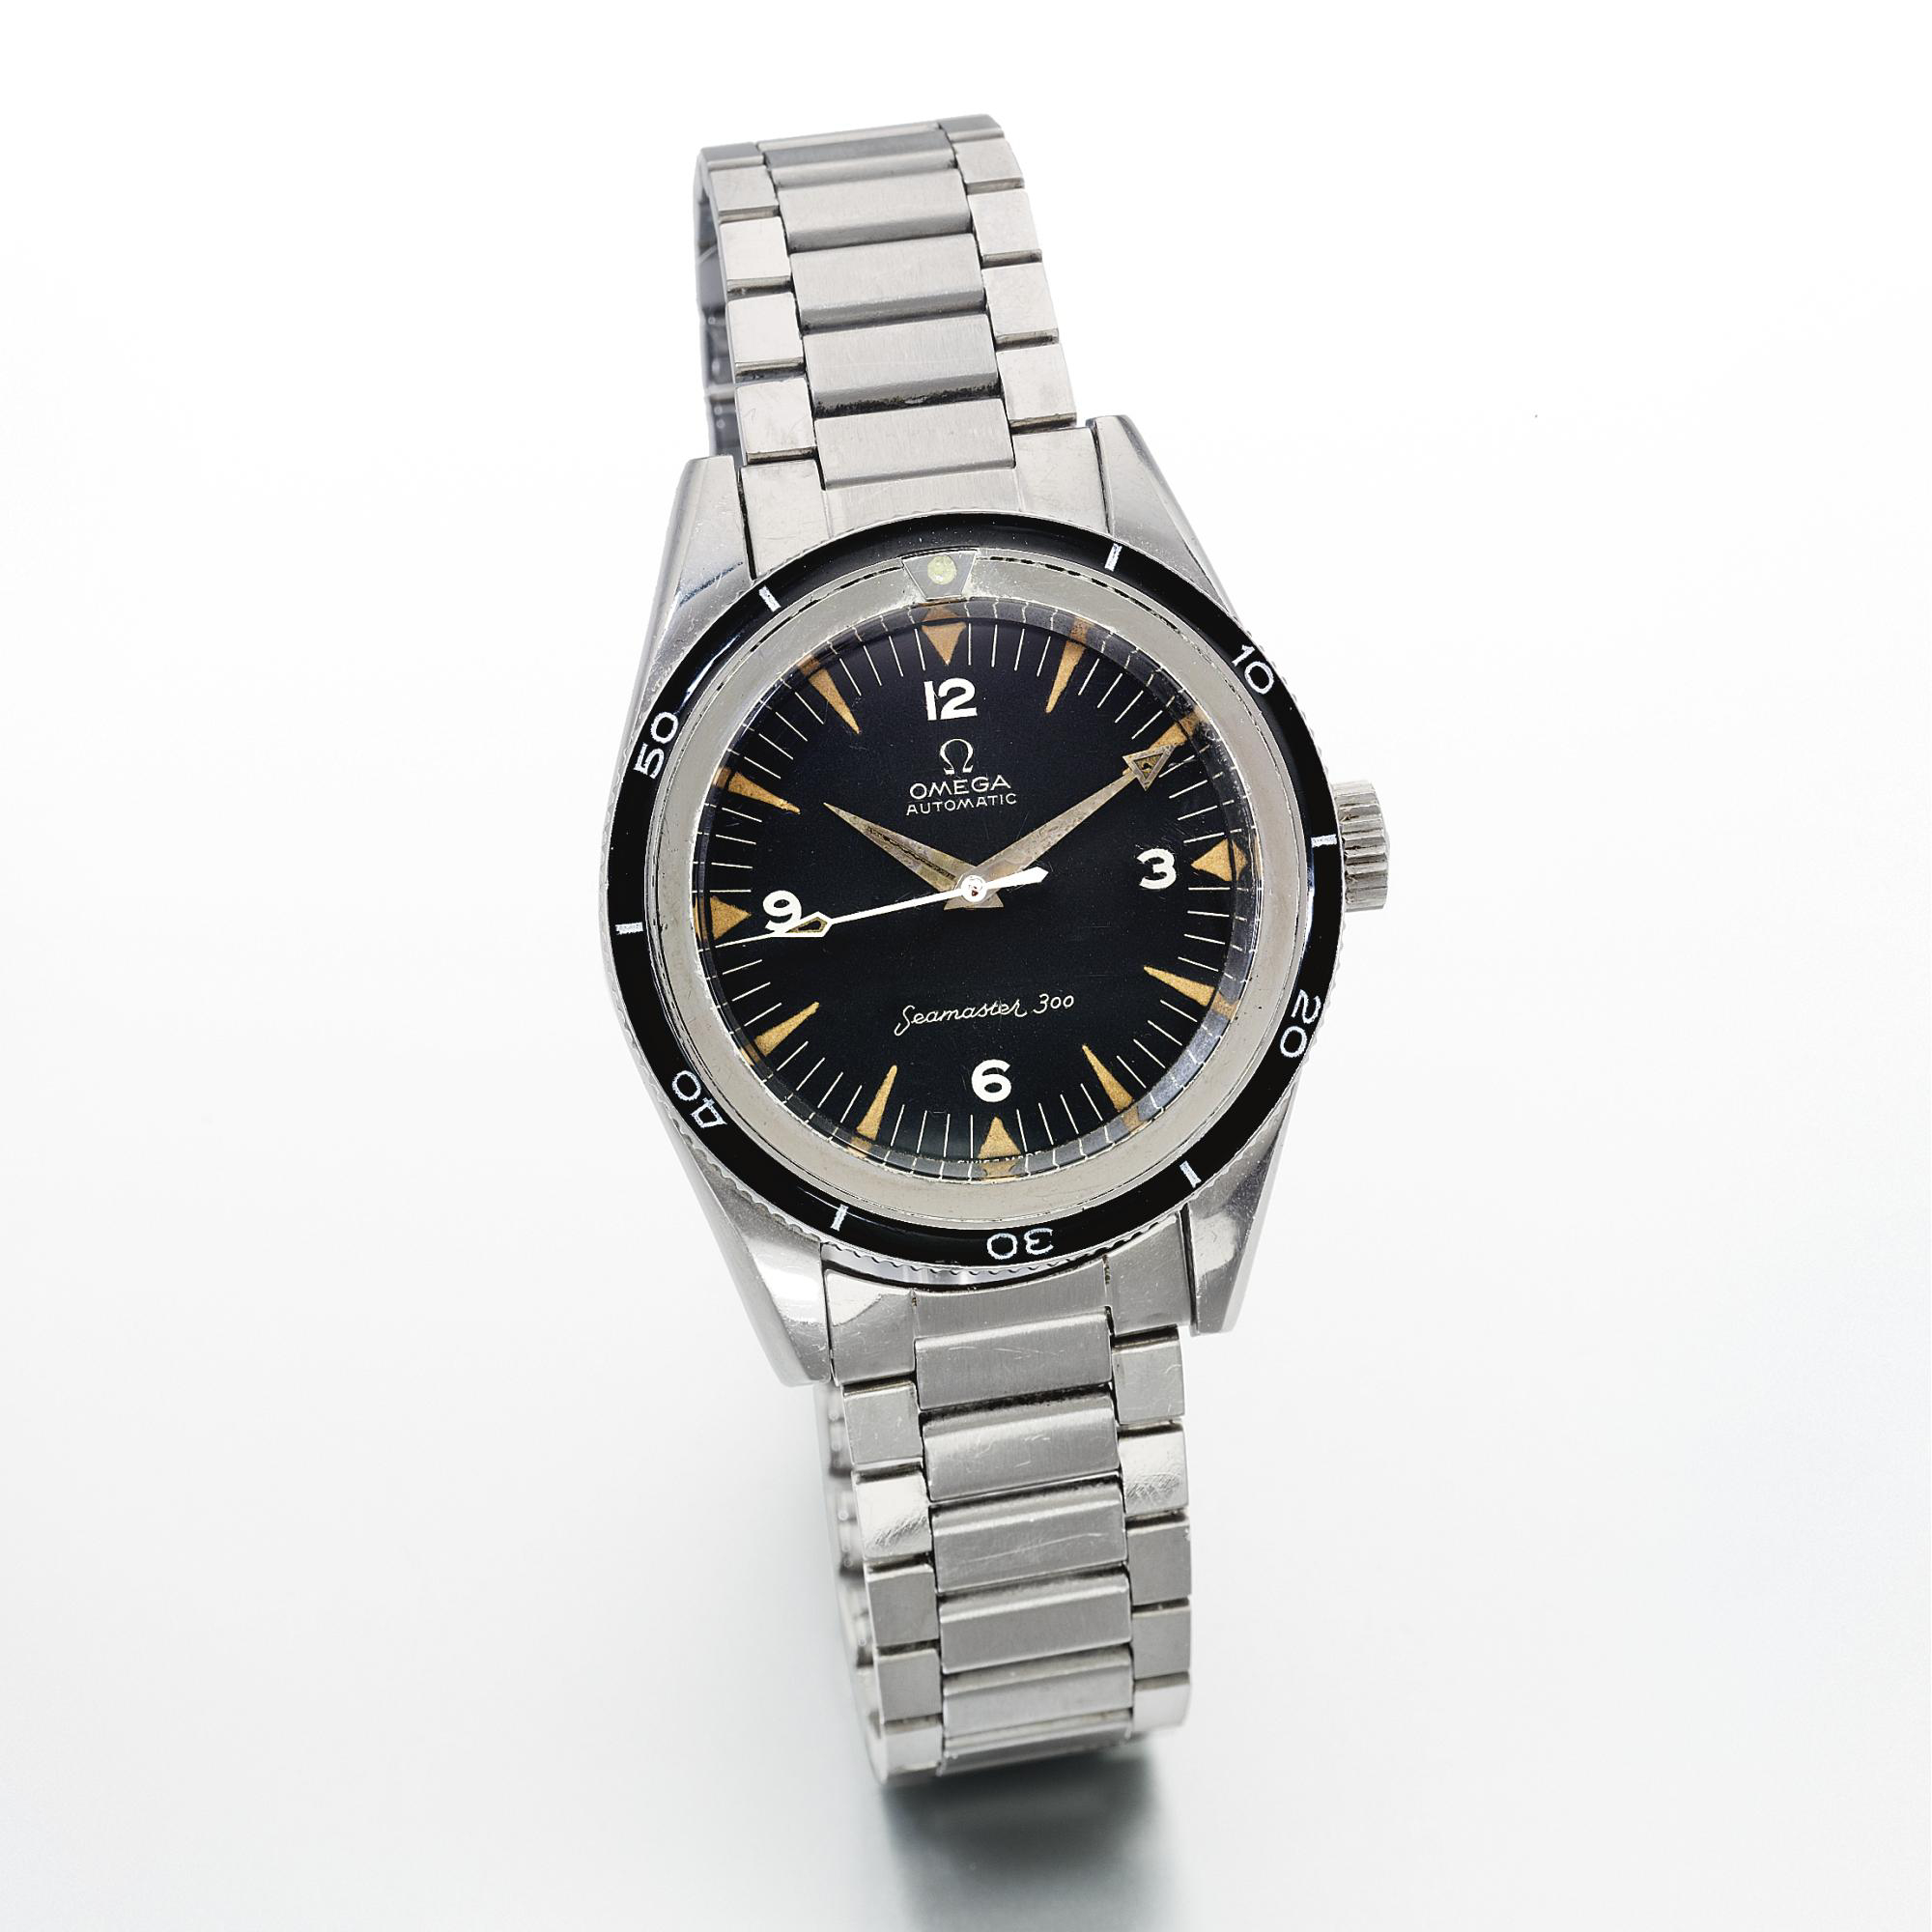 The Omega Seamaster 300 CK2913 with forward count bezel. Photo courtesy of Sotheby's.